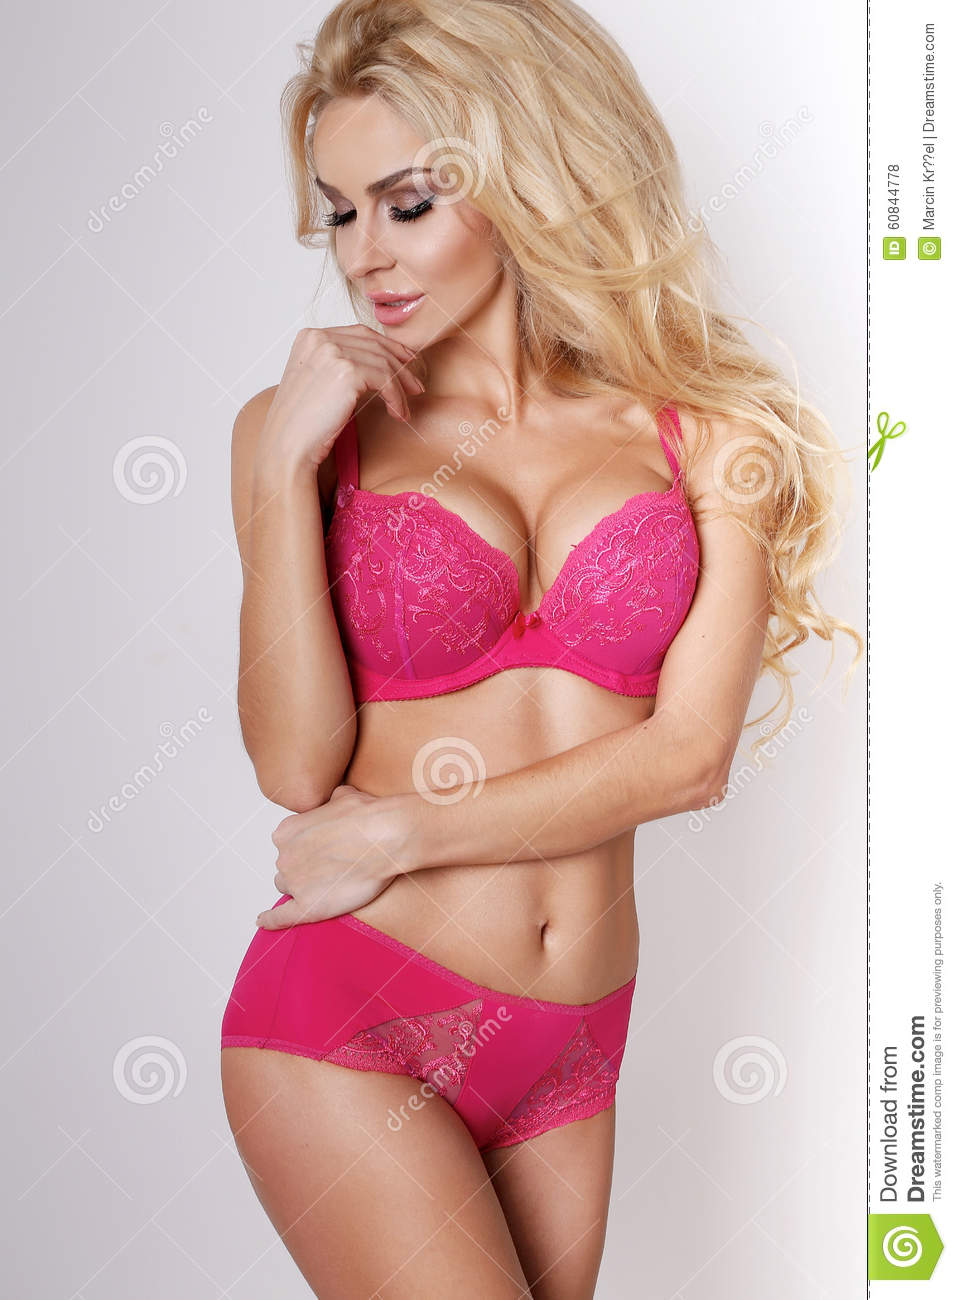 599ce8a143a7 Beautiful model woman blonde girl long hair green eyes with long slender  legs in pink erotic lingerie with lace stands on a white background